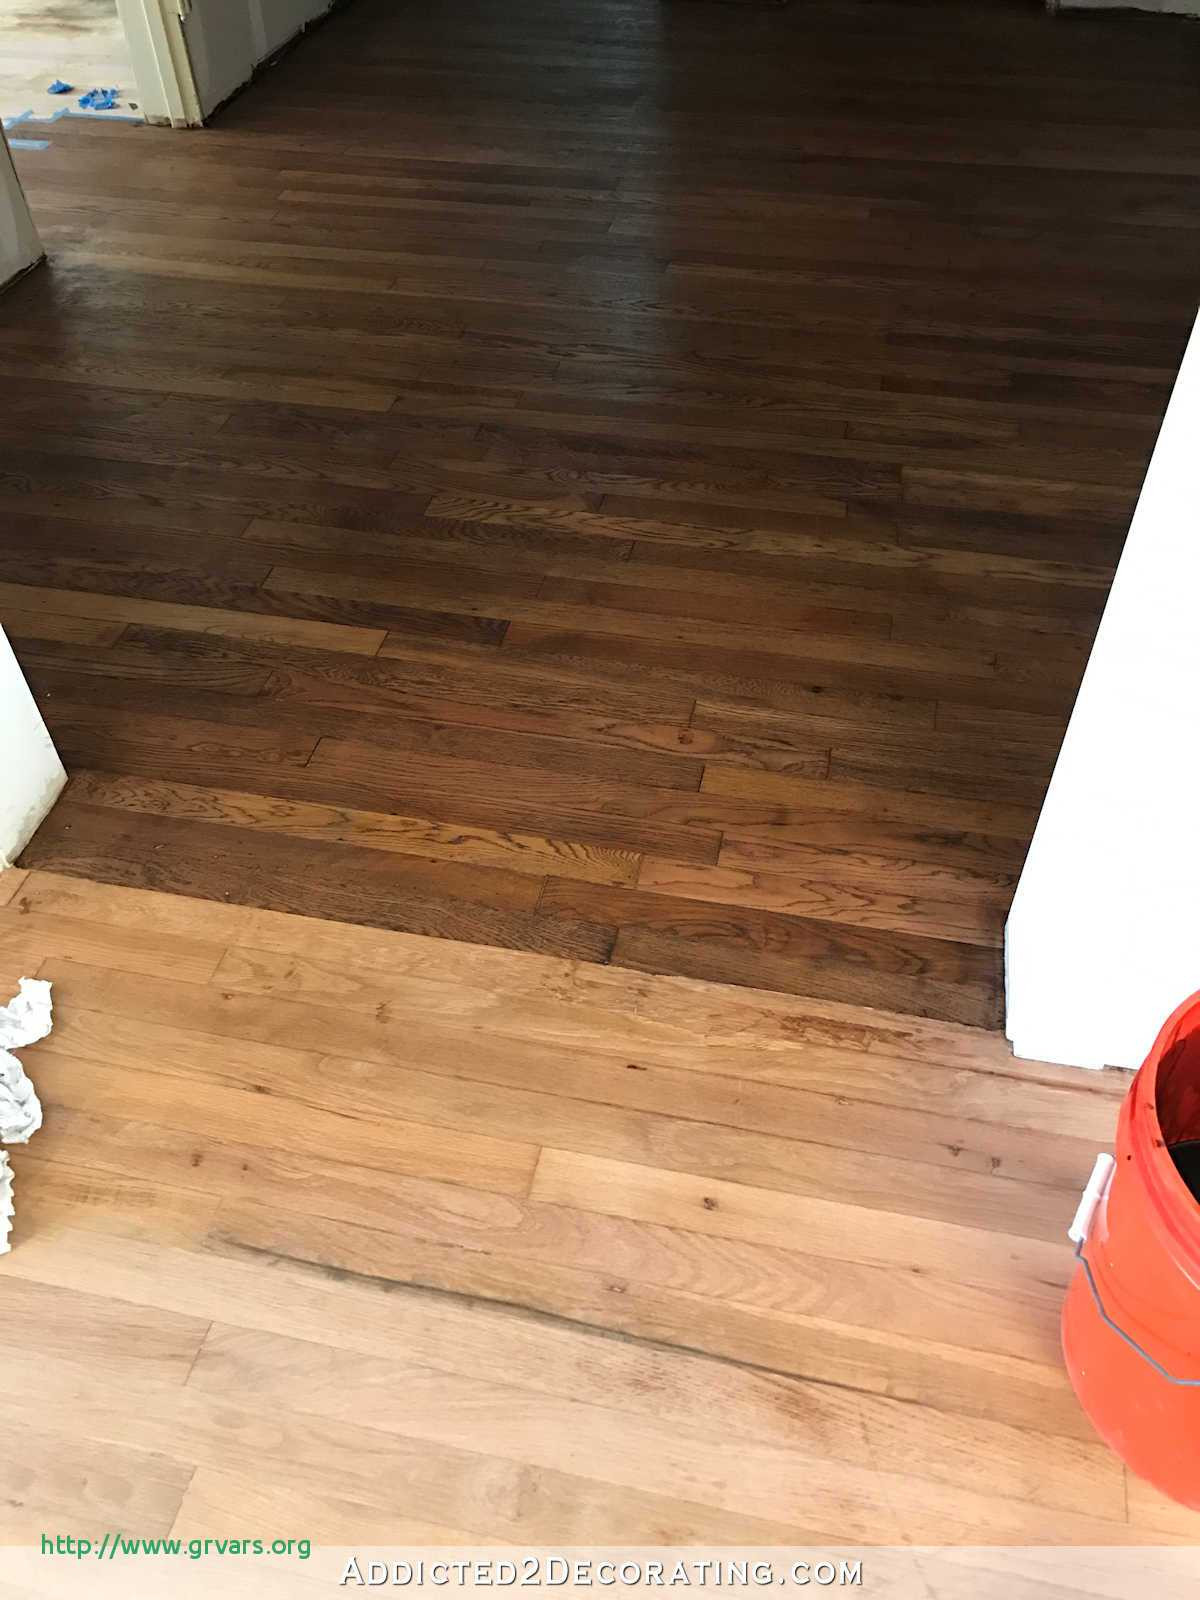 hardwood floor wax finish of 22 unique wood floor wax or varnish ideas blog with staining red oak hardwood floors 2 tape off one section at a time for